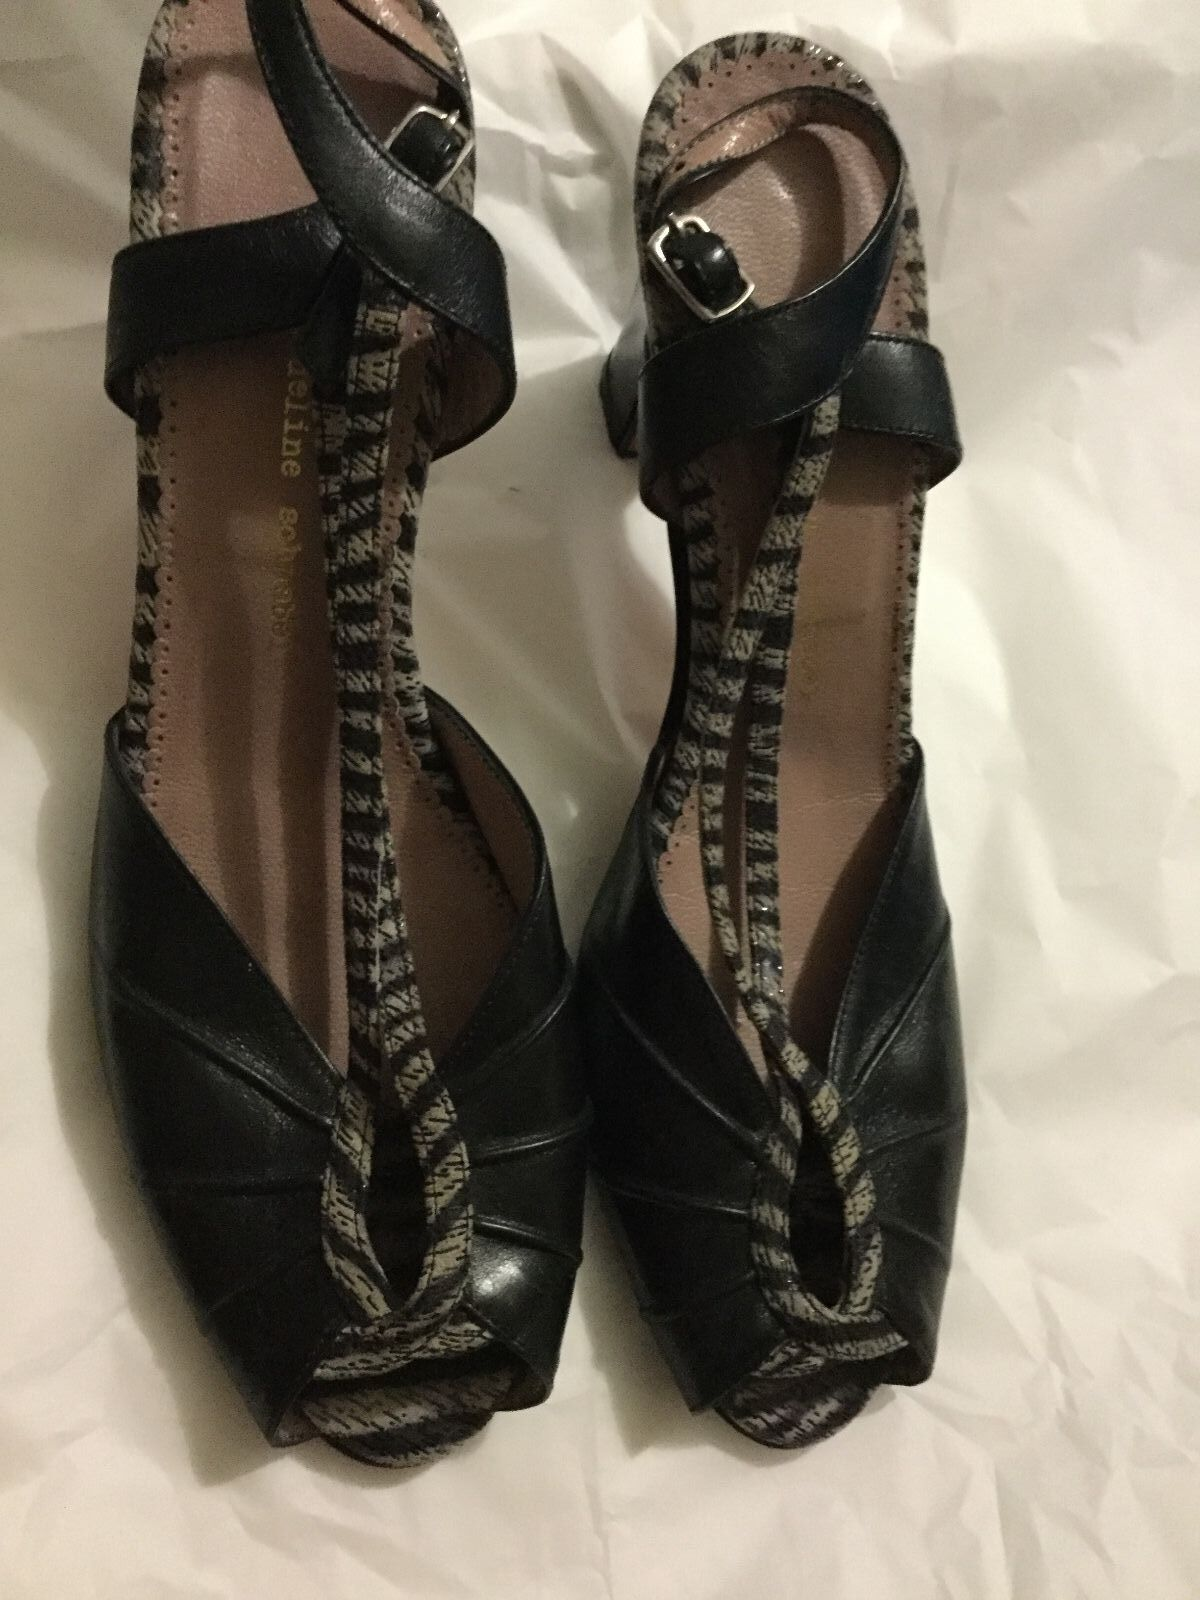 EXCELLENT CONDITION Jacqueline Schnabel Open-Toe Slingbacks - 38.5 8.5